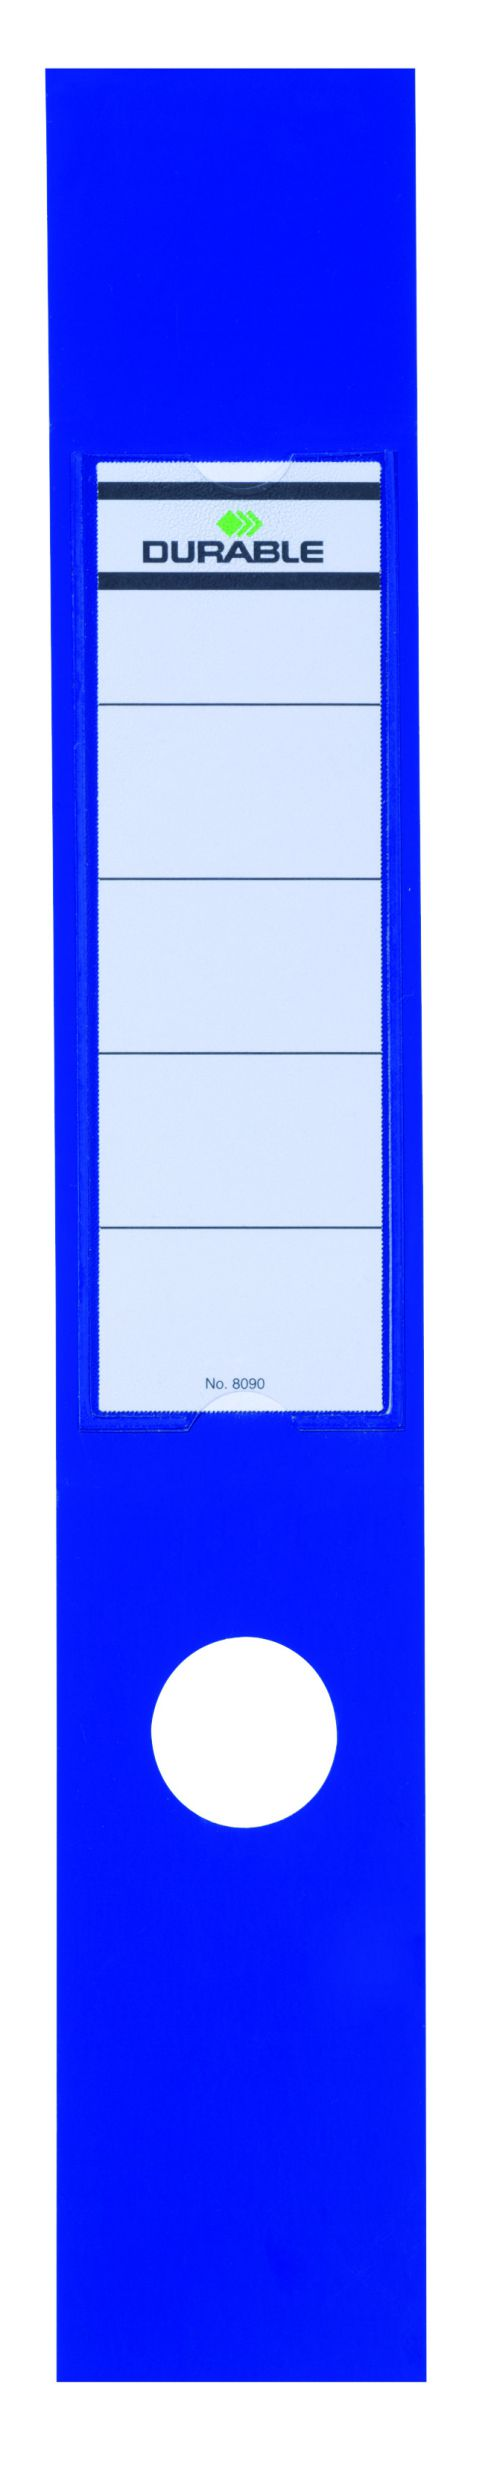 Durable Ordofix Self-Adhesive File Spine Label, 60mm, Blue (Pack of 10) 8090/06